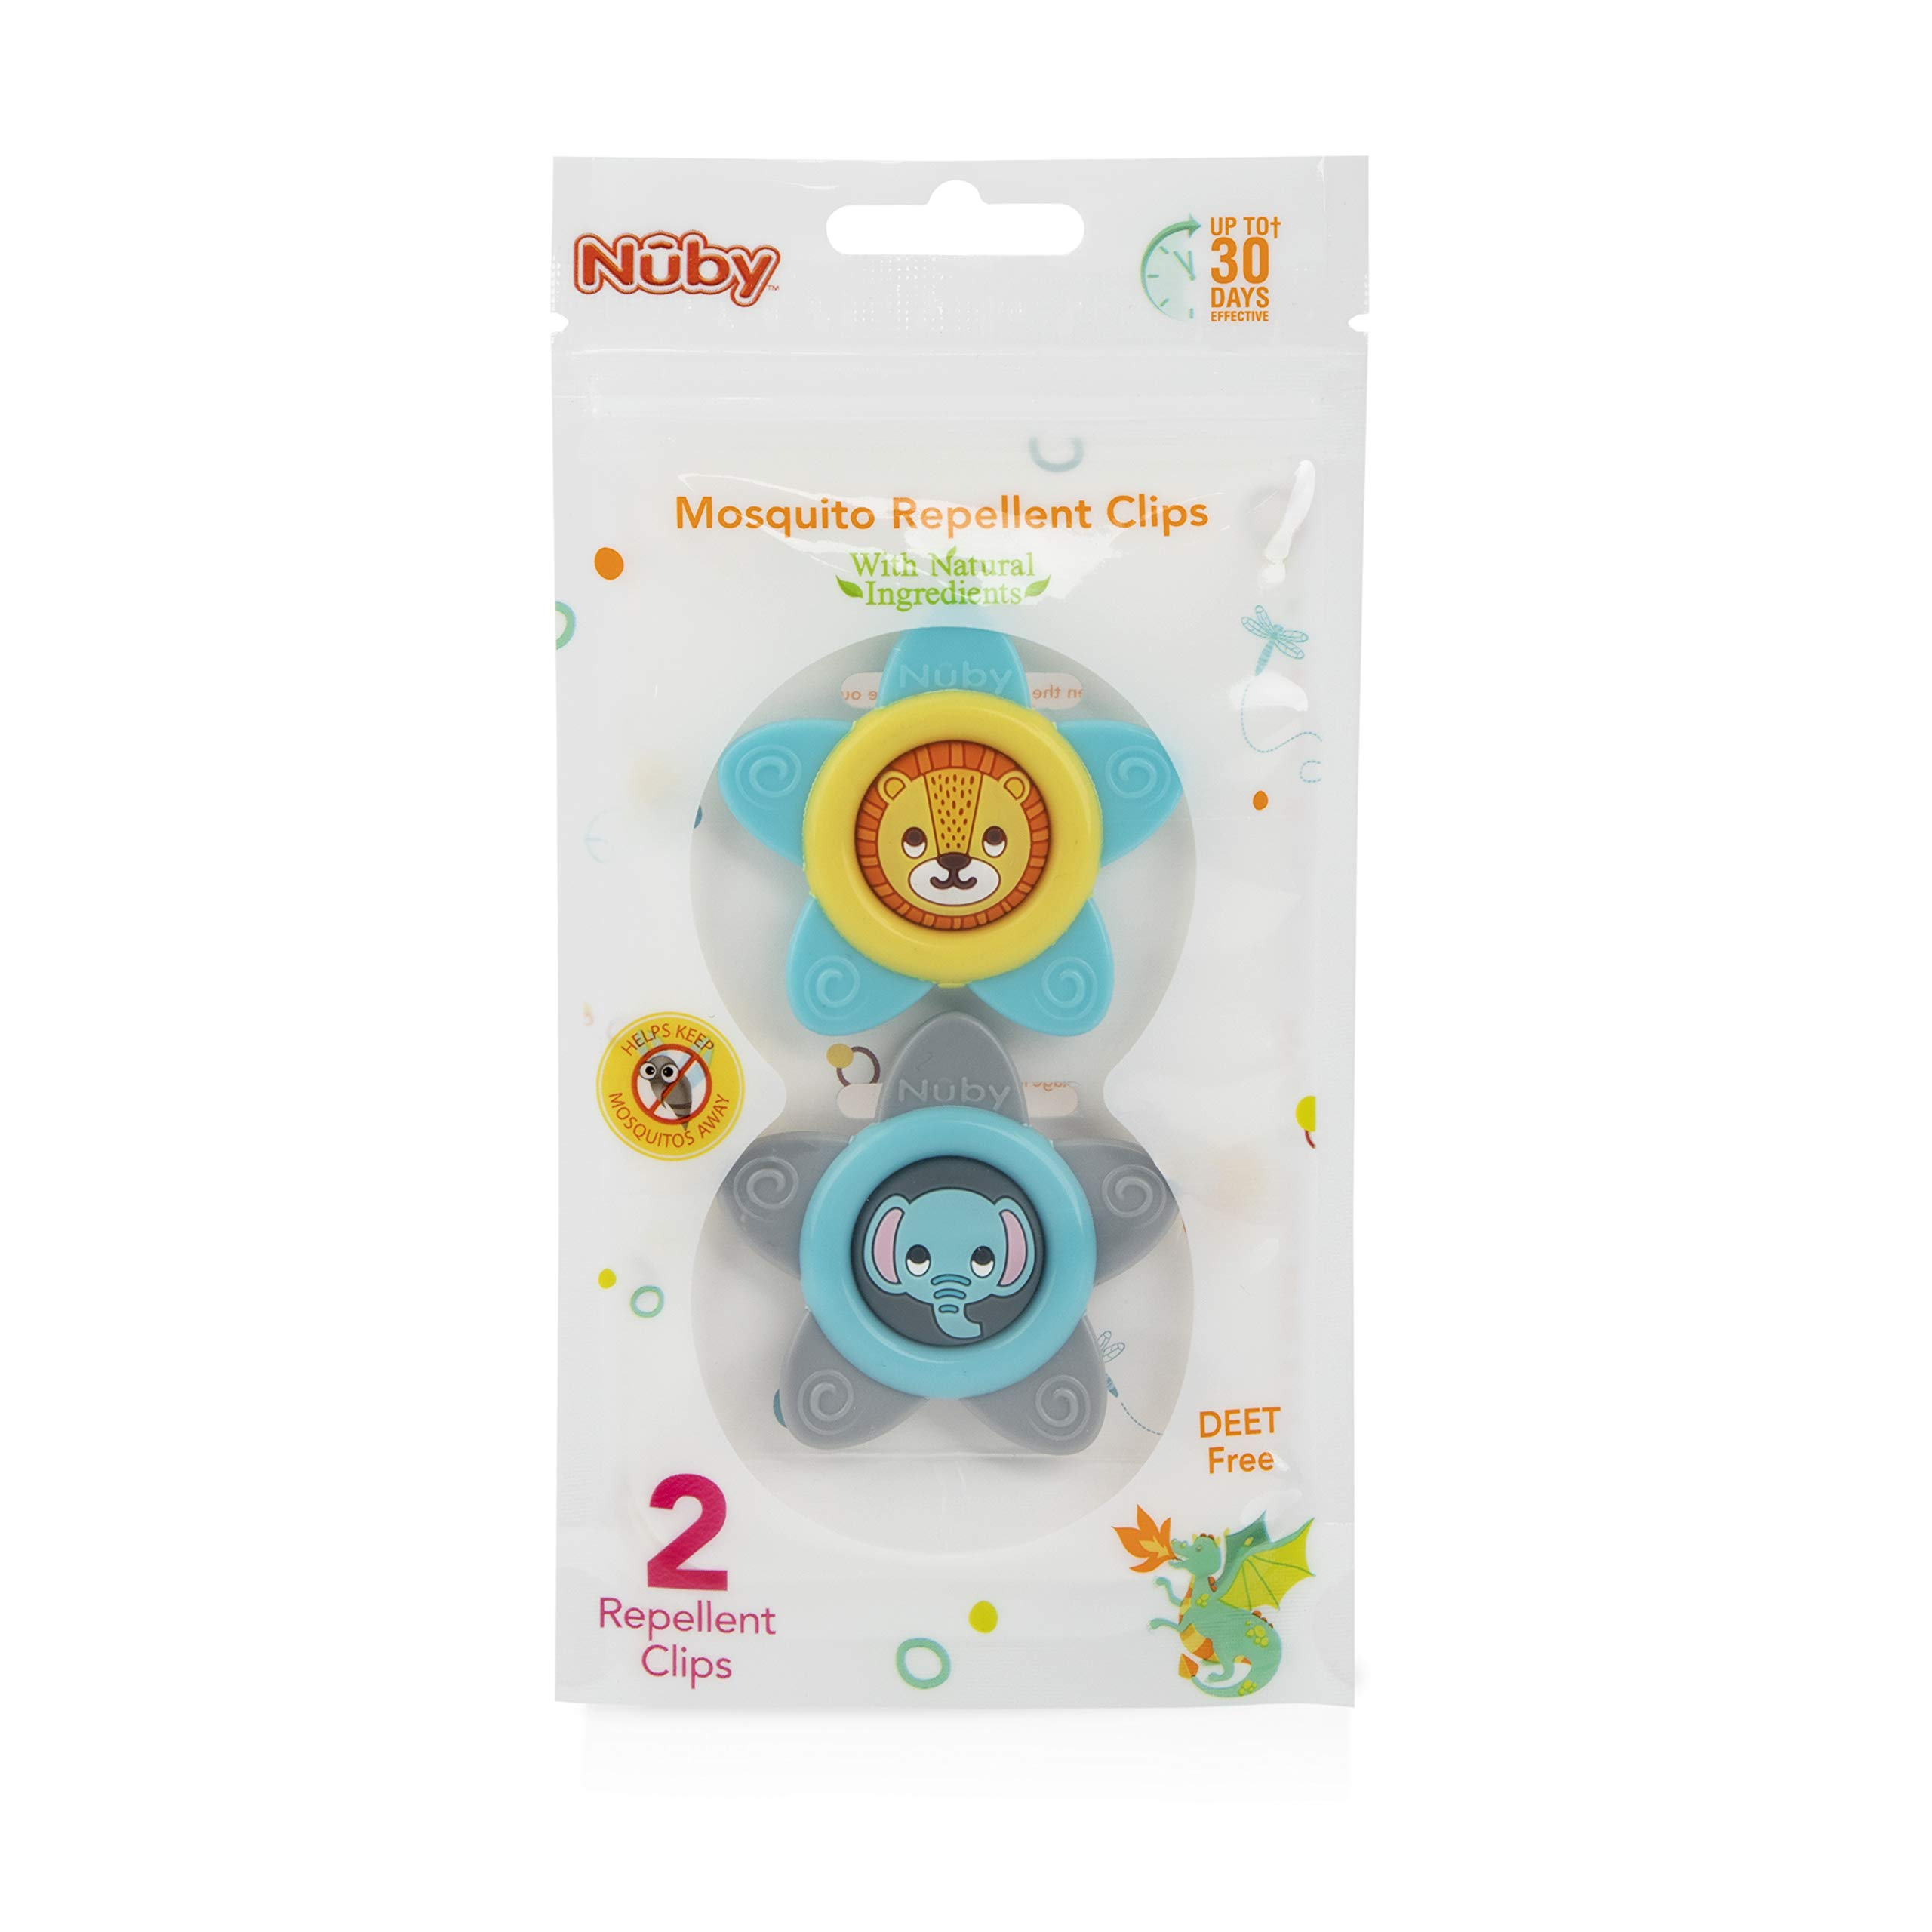 nomo MOSQUITO Repellant Clip Pleasant Natural and Safe 1 clip protects for 30 days 100/% herbal protection for baby and kids